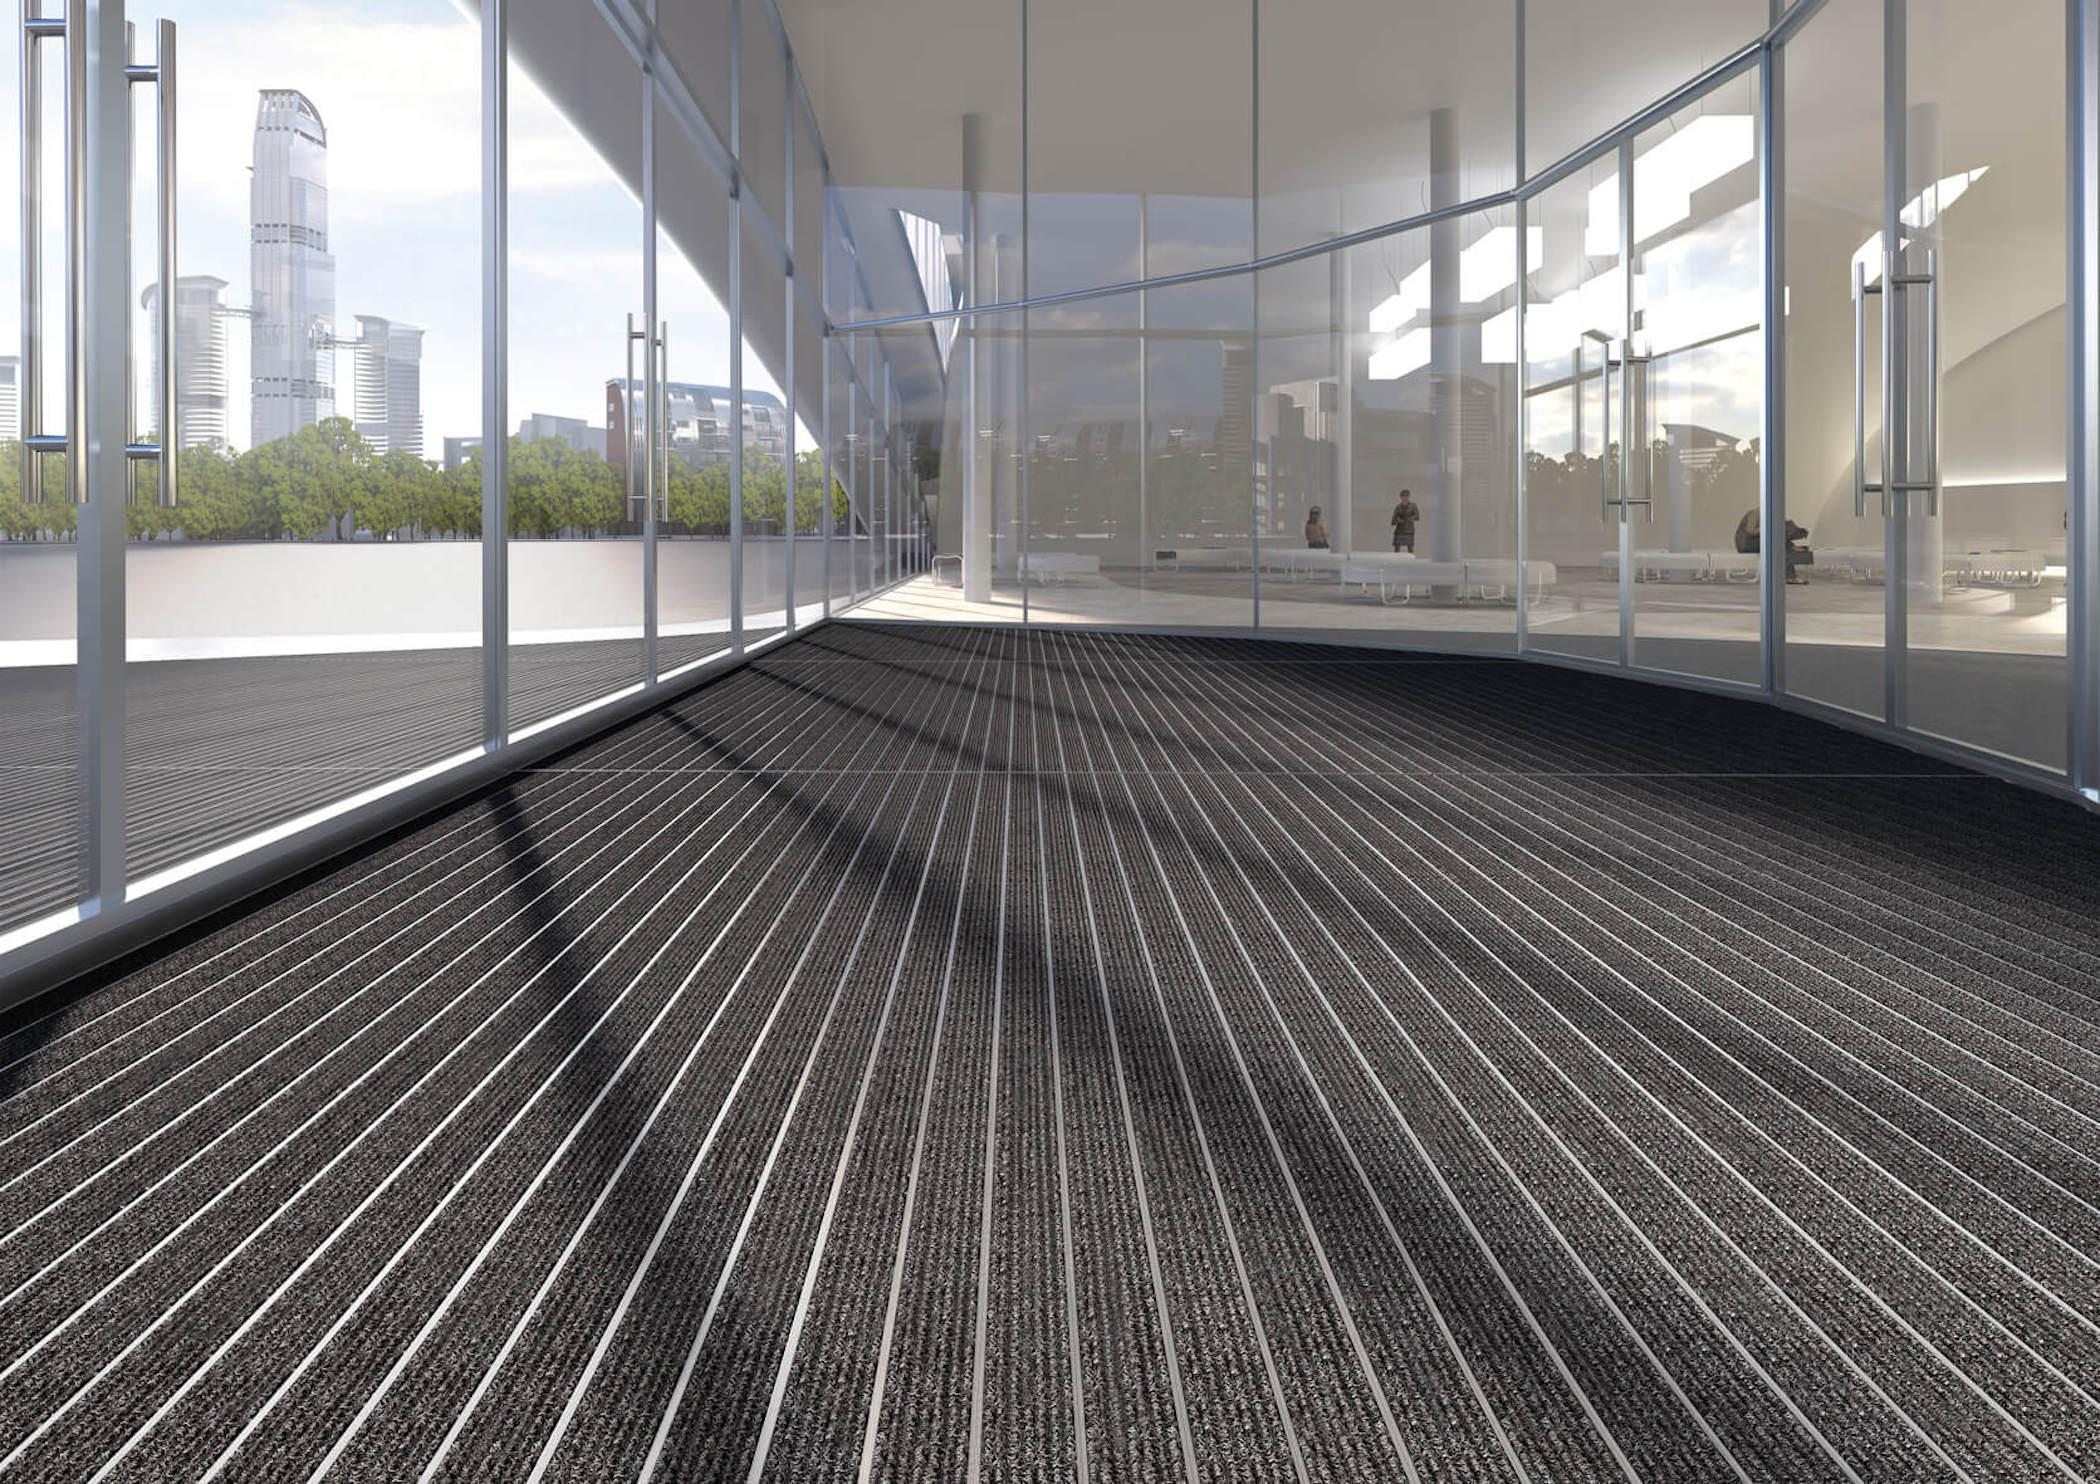 all about Entrance mats, and entrance matting